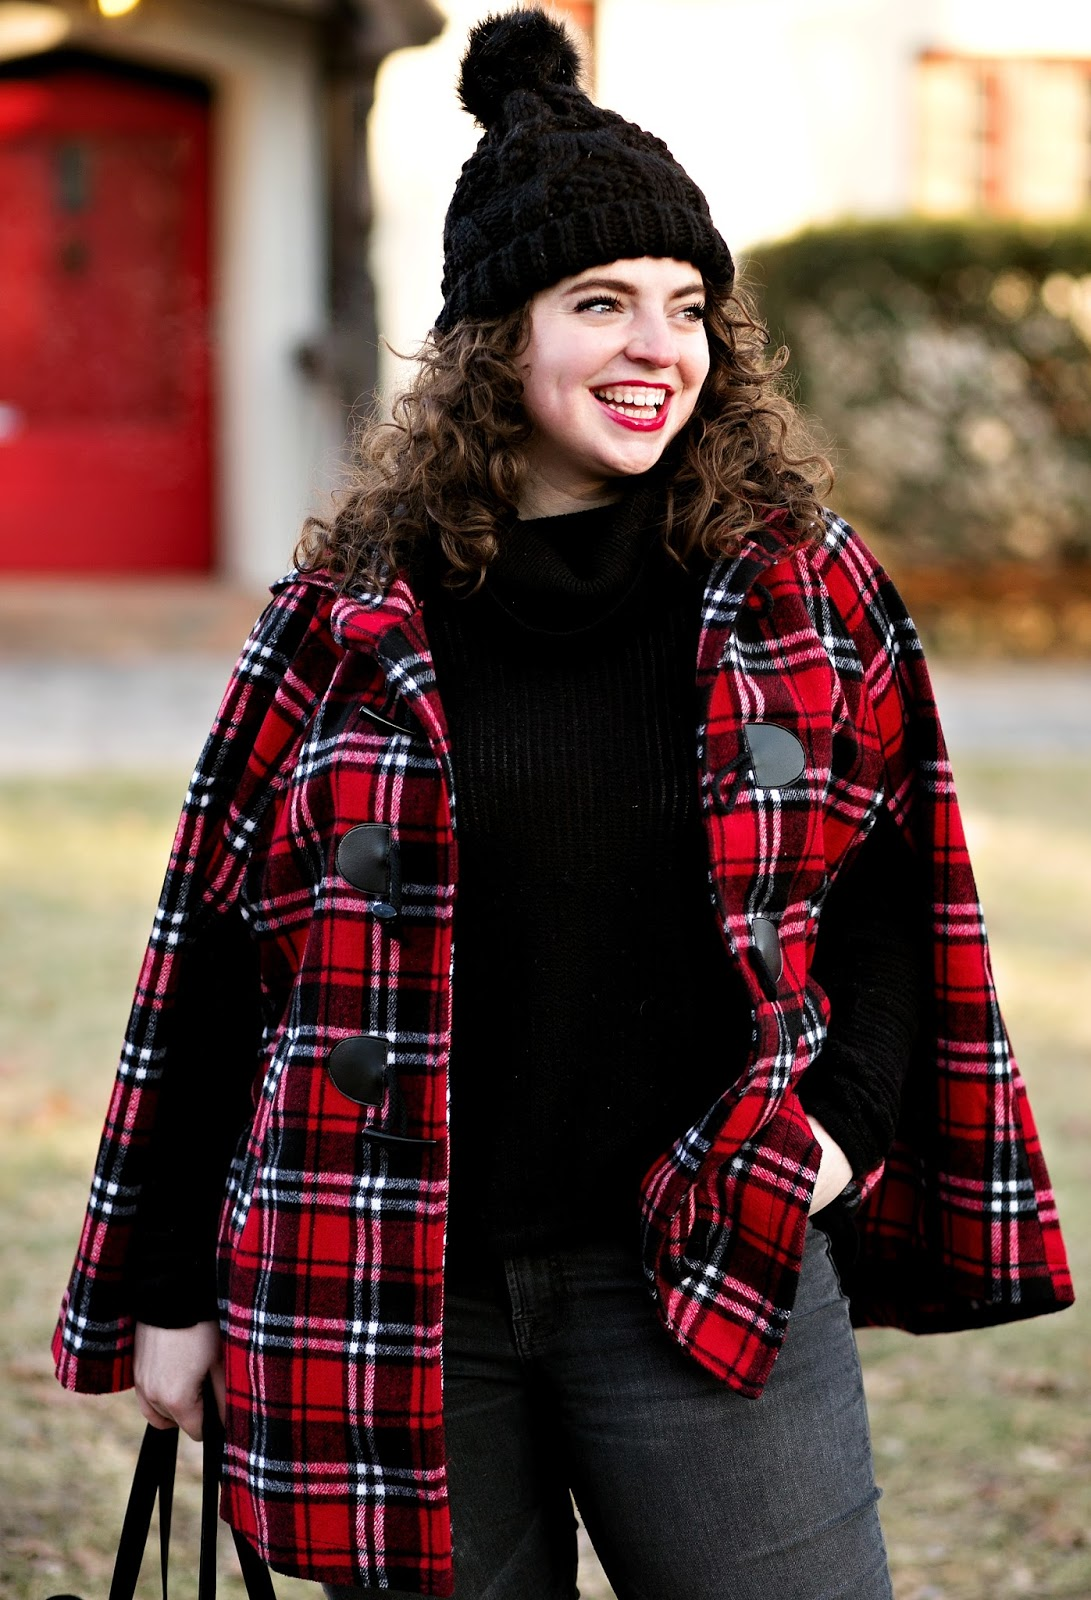 Red plaid cape outfit that shows you can stay stylish and warm!